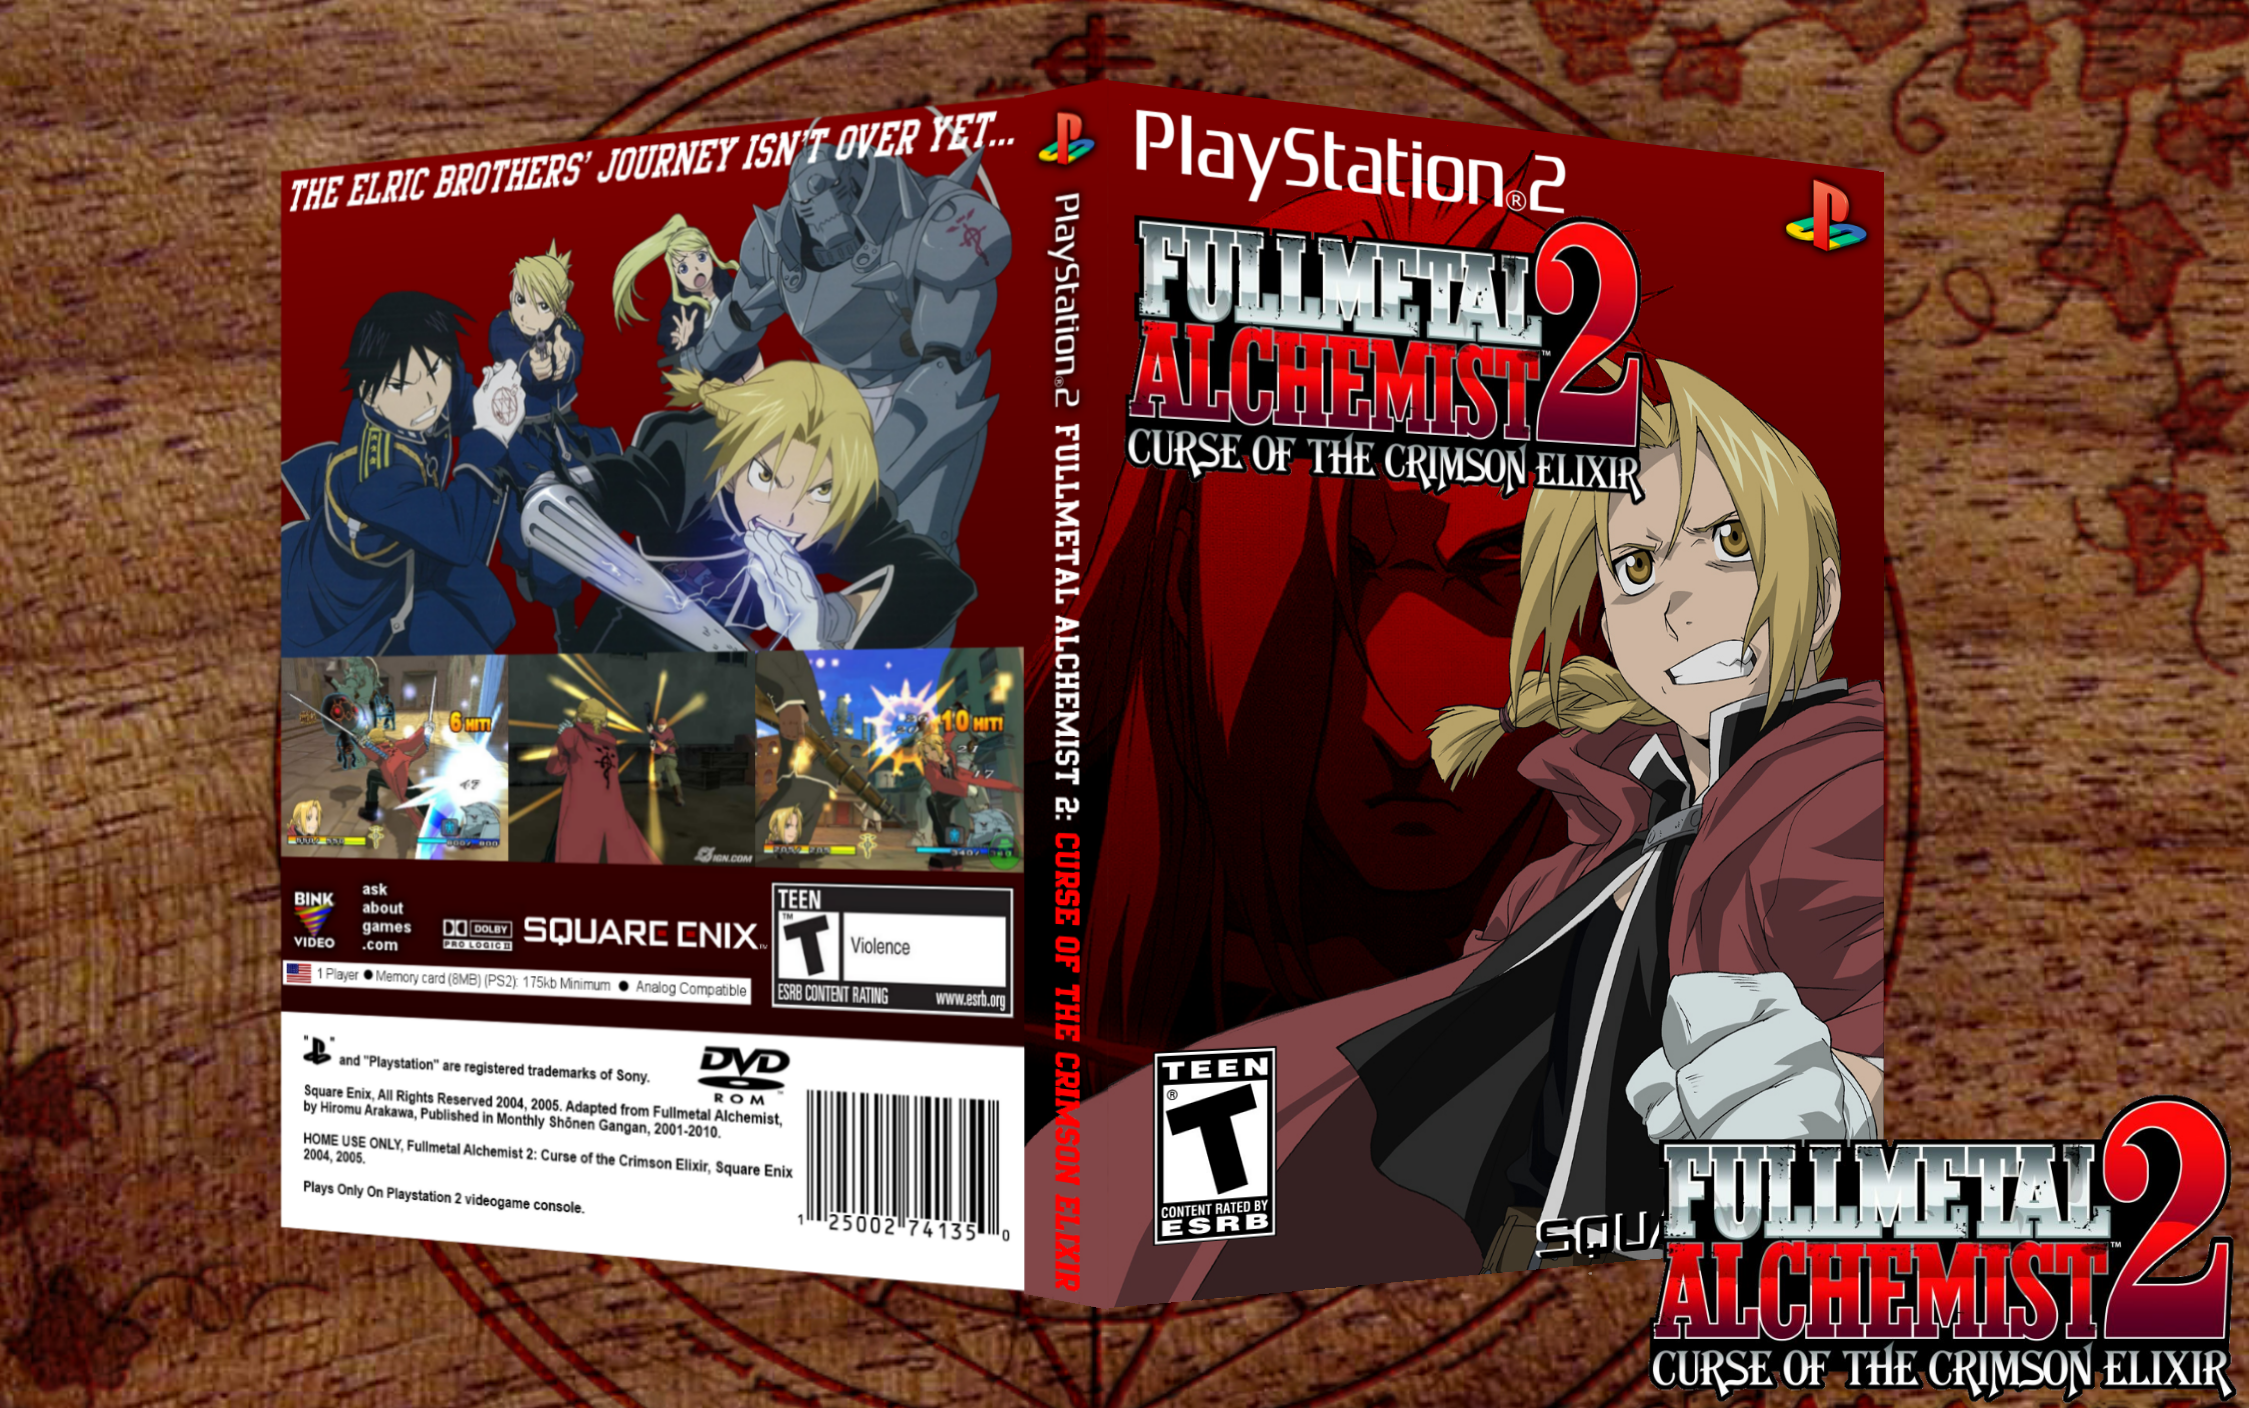 Fullmetal Alchemist 2: Curse of the Crimson Elixir box cover